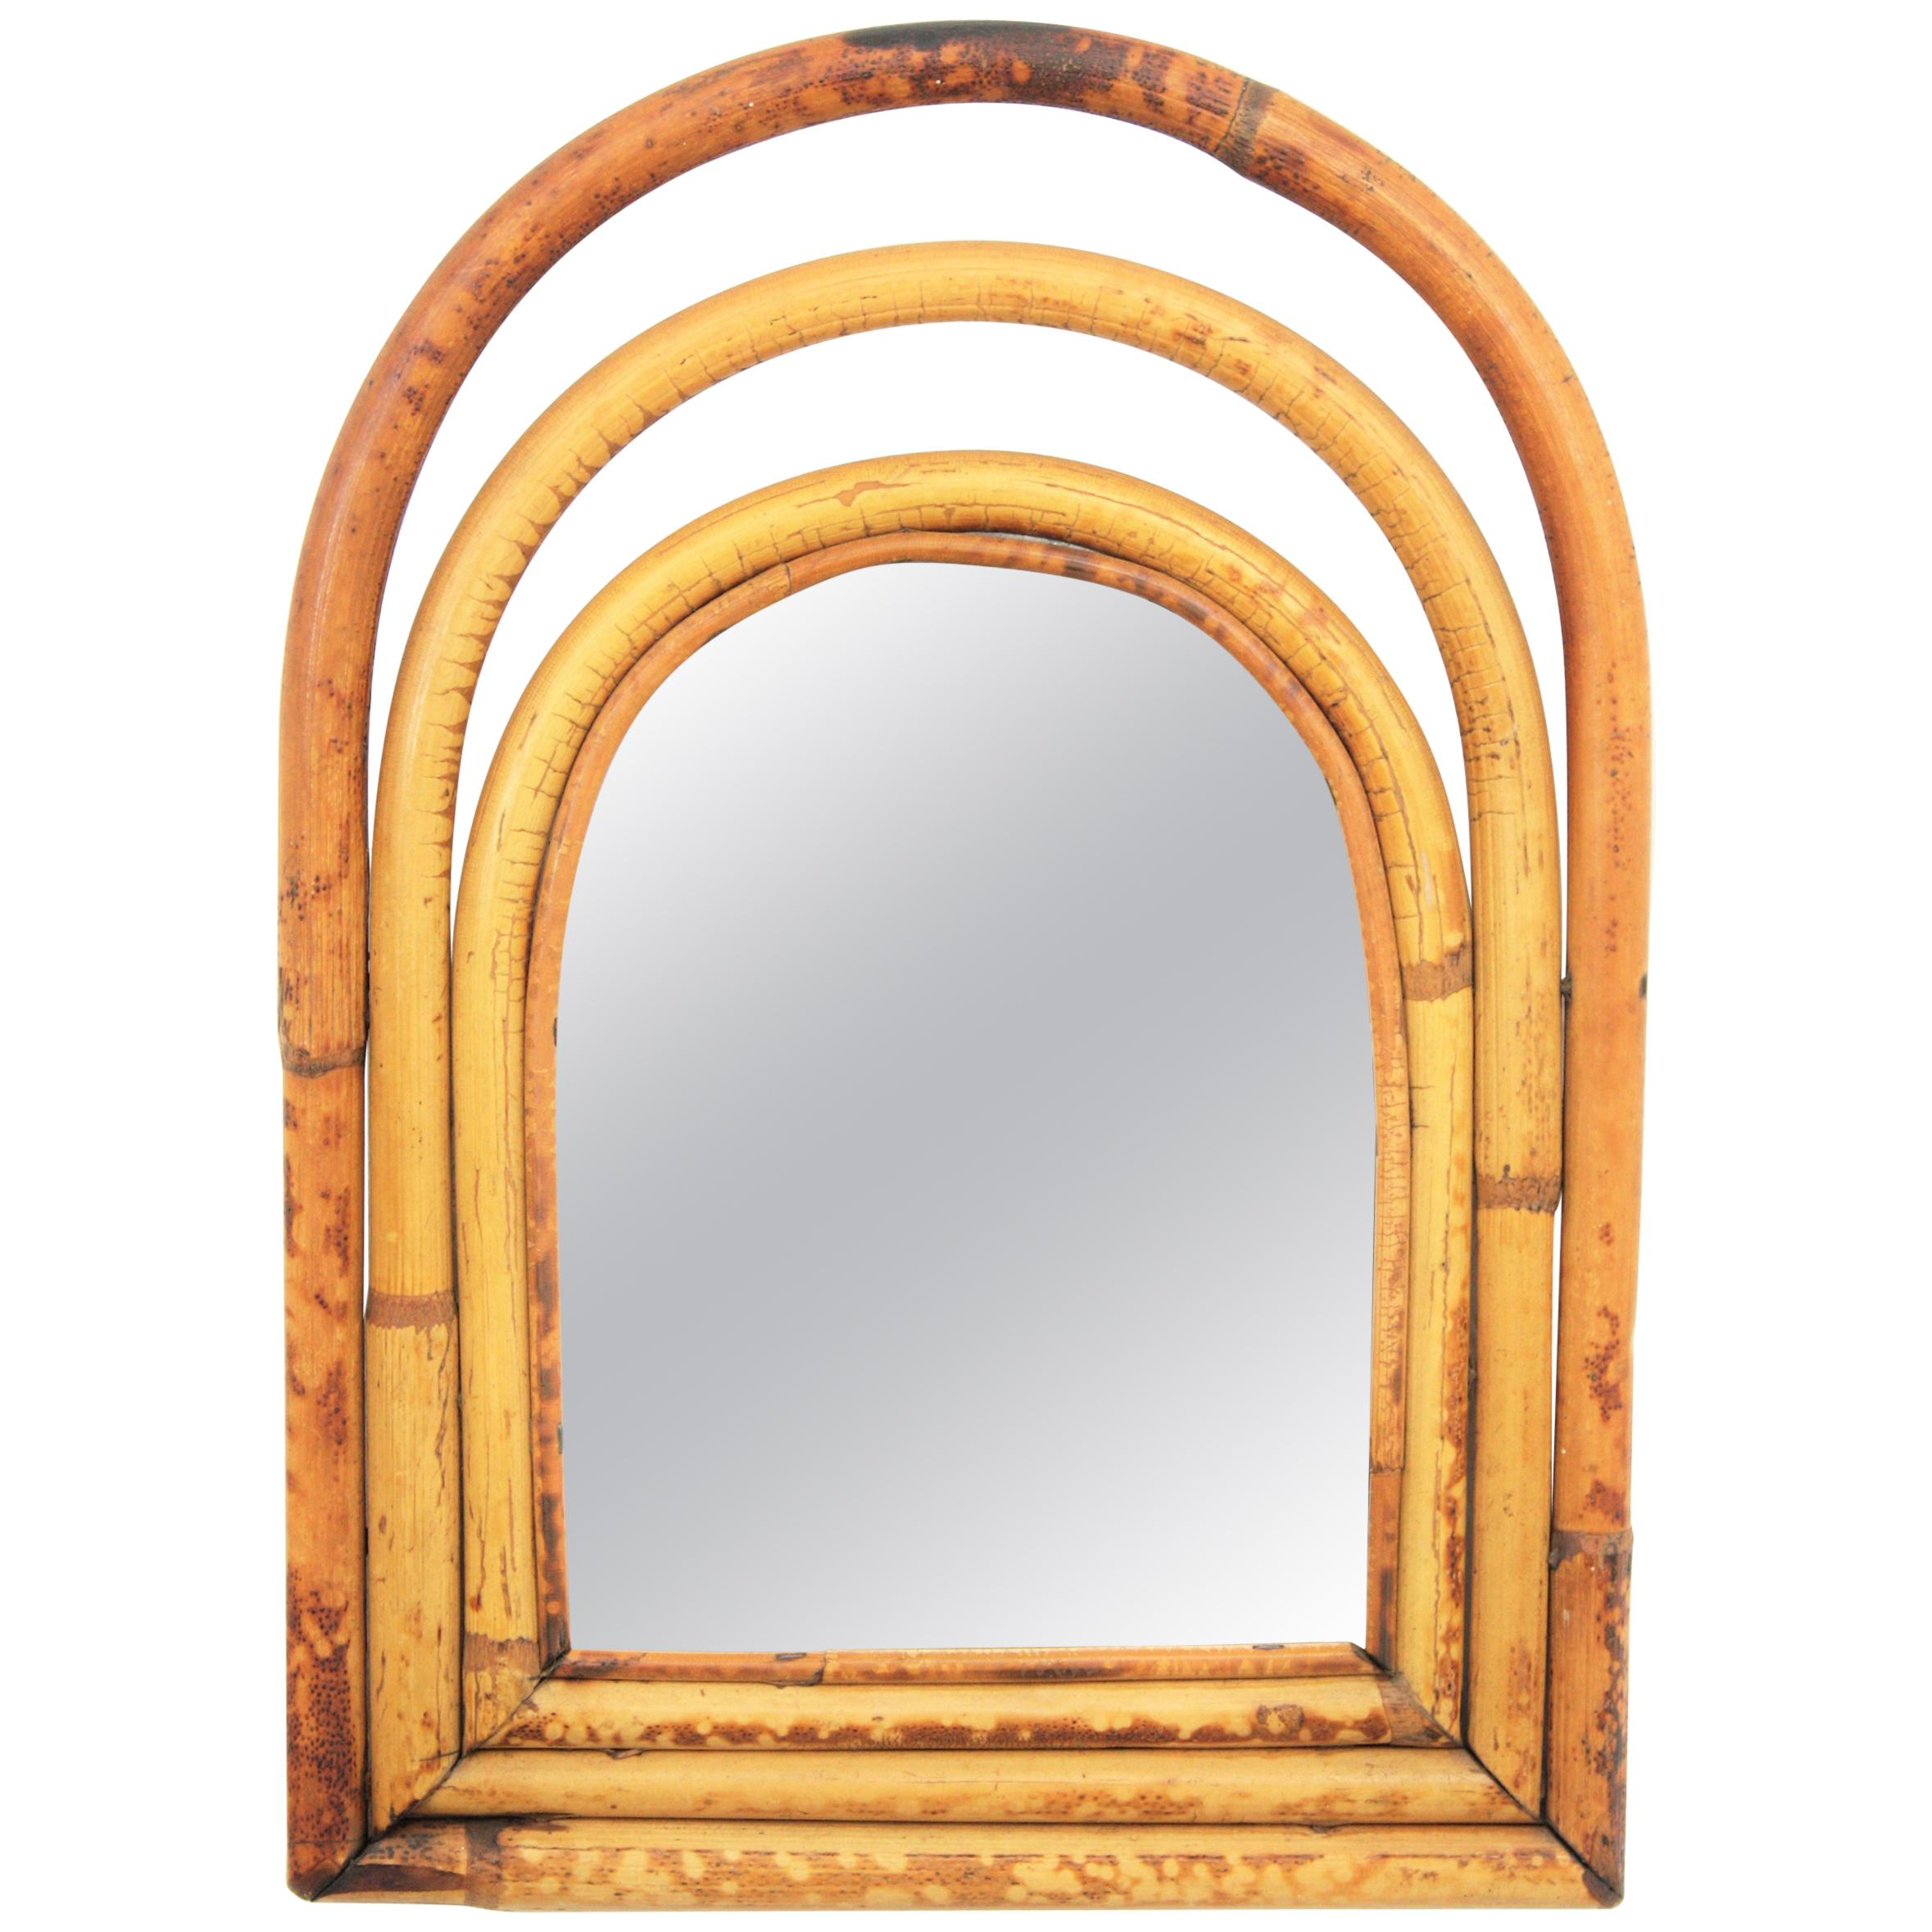 Antique And Vintage Mirrors 15 676 For Sale At 1stdibs